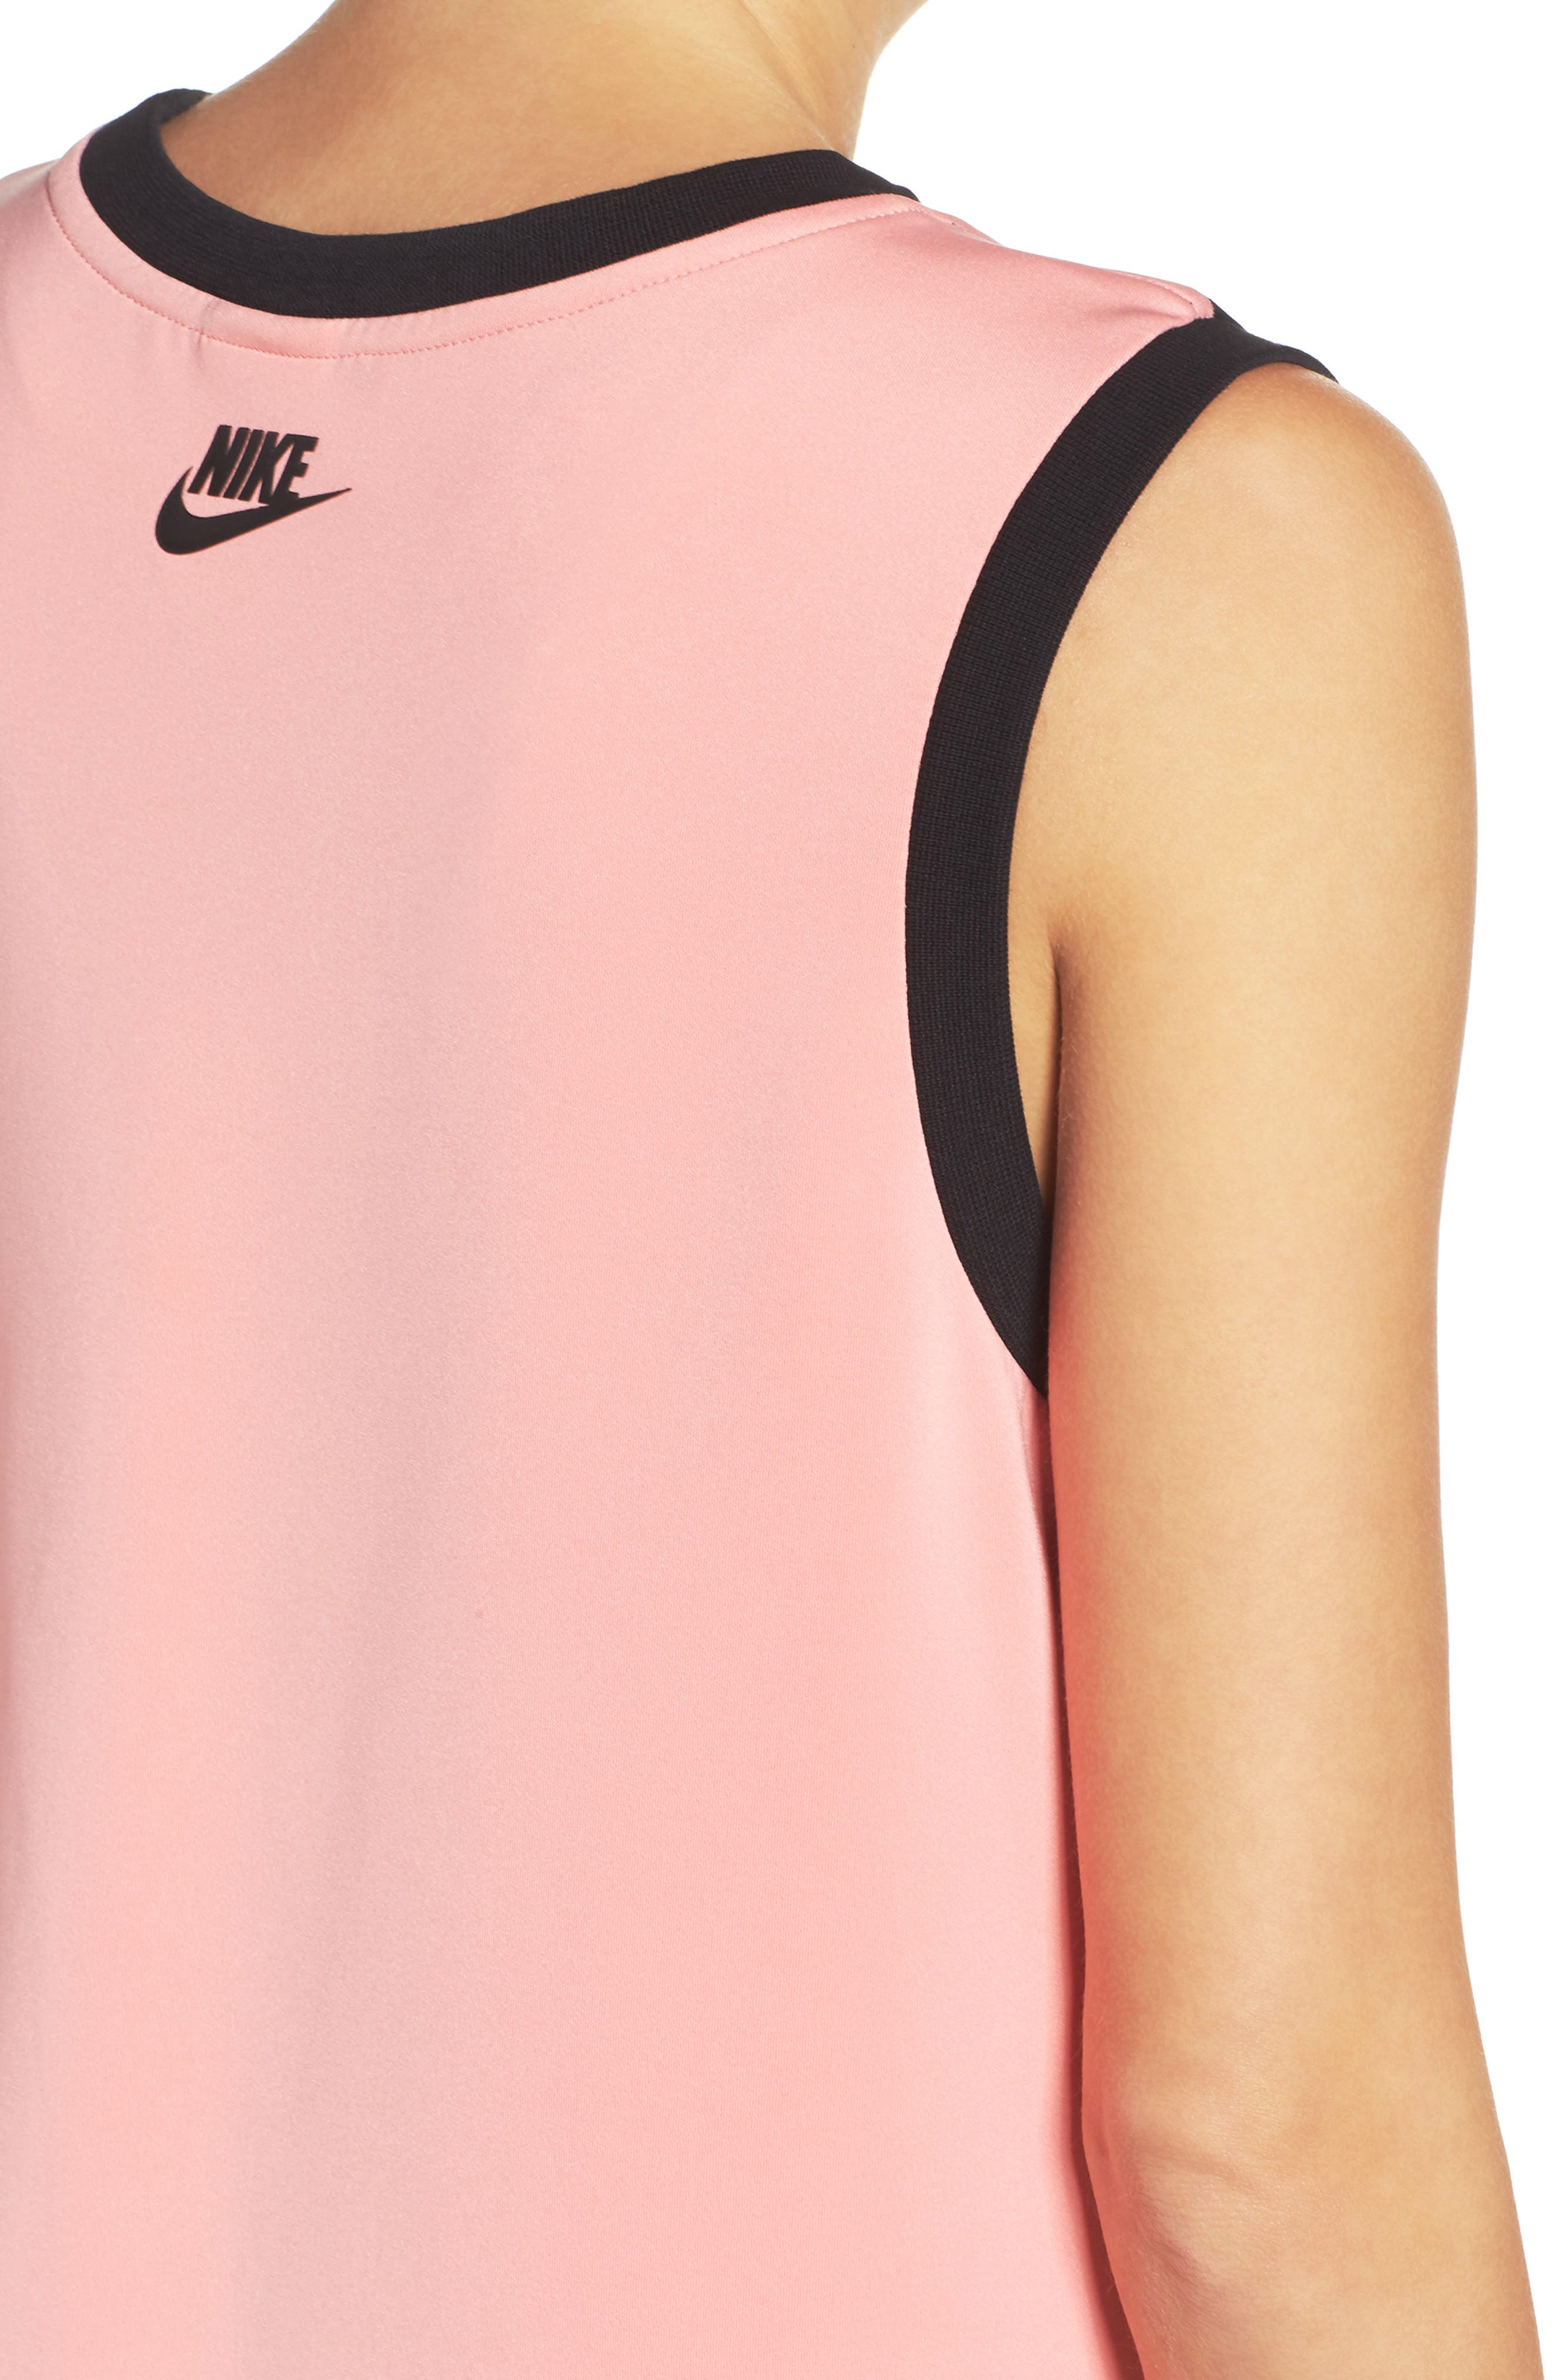 NIKE,                             Irreverent Tank Dress,                             Alternate thumbnail 4, color,                             010